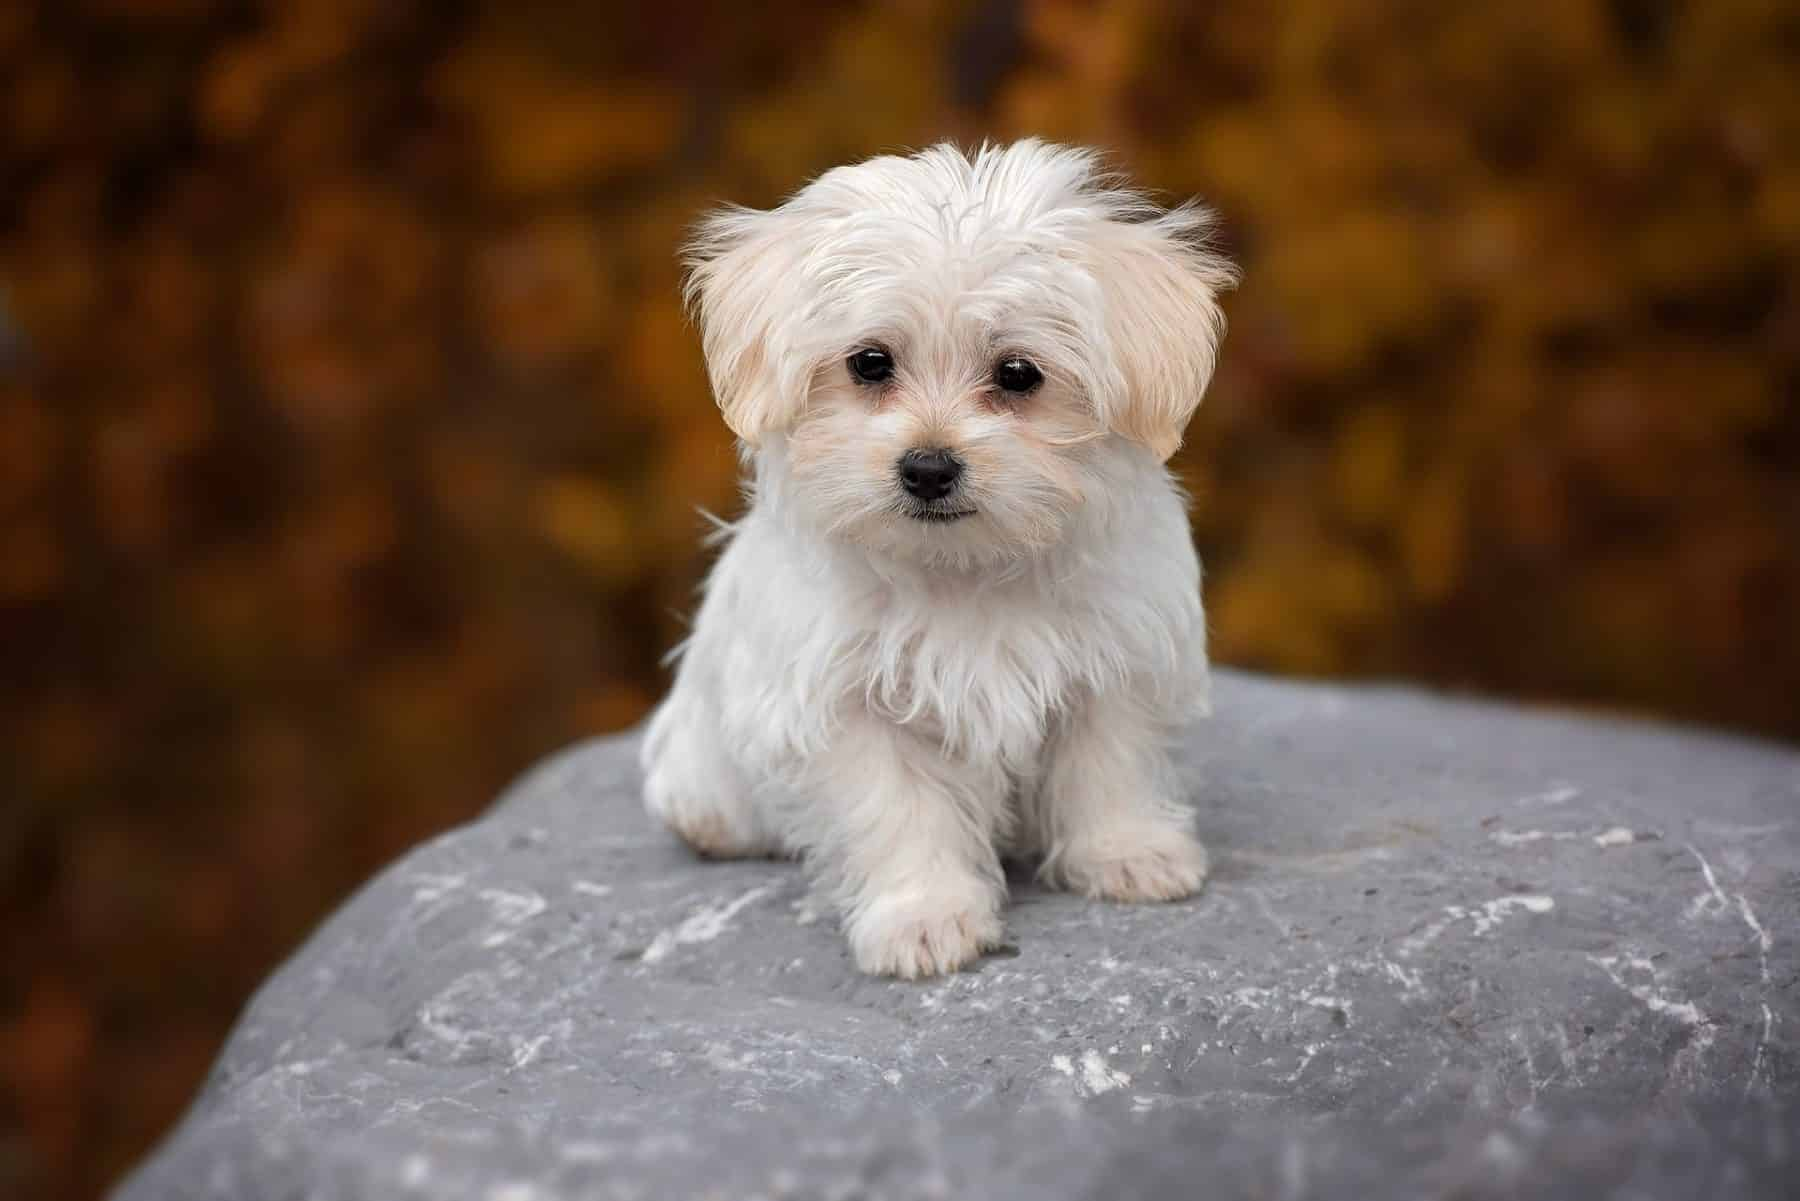 Maltese Puppies The Ultimate Guide For New Dog Owners The Dog People By Rover Com